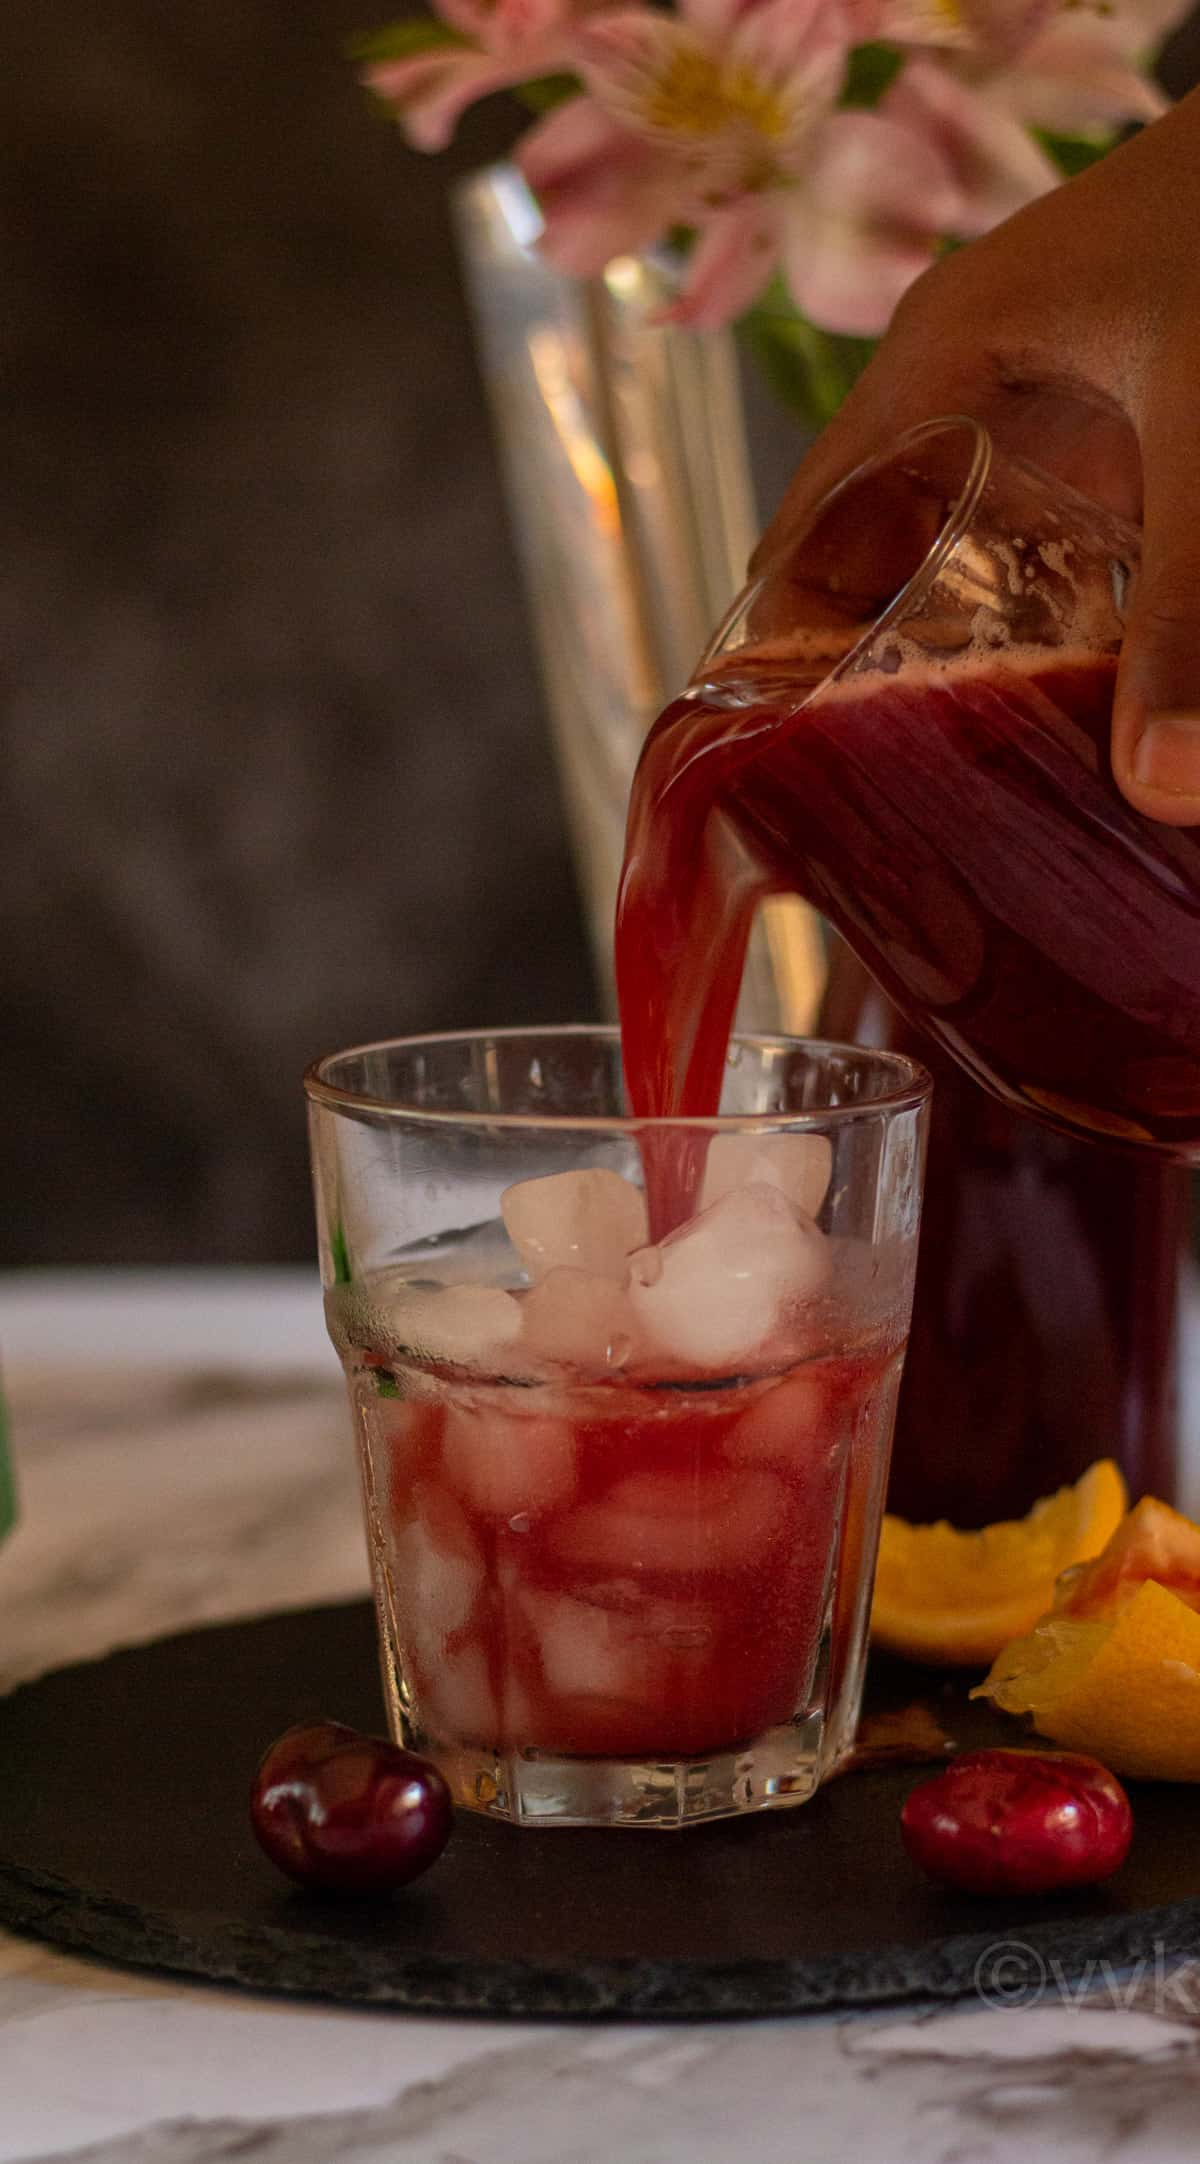 pouring shot of cherry lemonade into a glass filled with ice